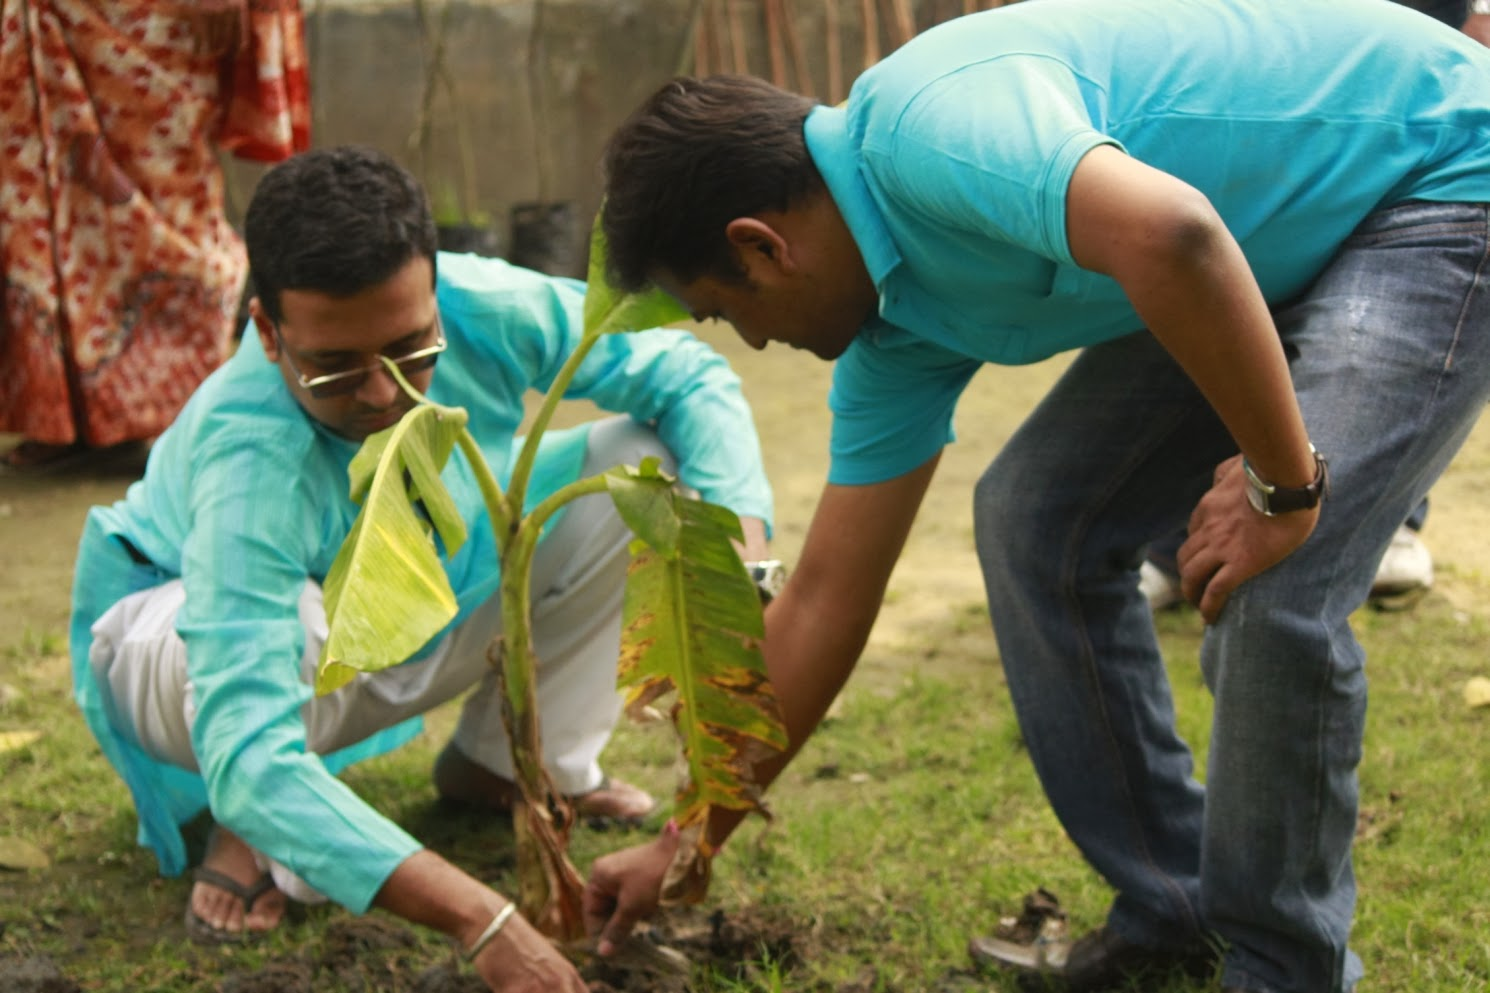 TIE Kolkata, Kolkata Tiecon 2014, Archan Deb planting fruit trees with Sustainable Green Initiative at SPCI, Kolkata